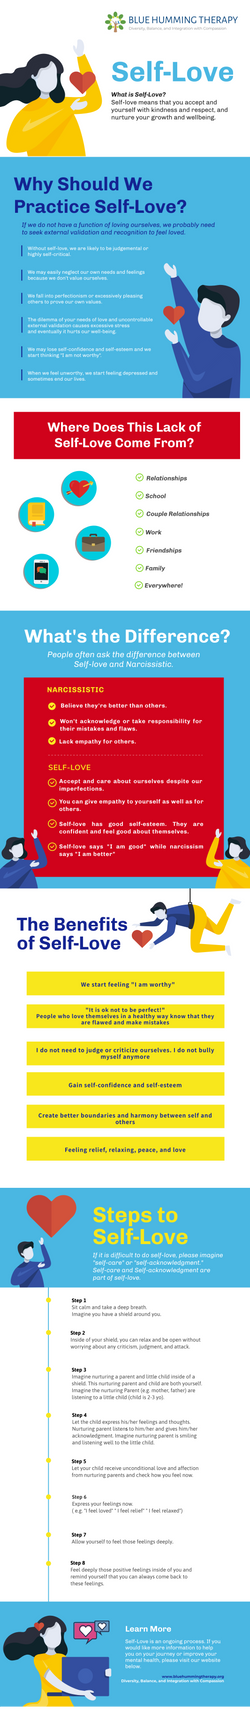 Self-Love-Infographic